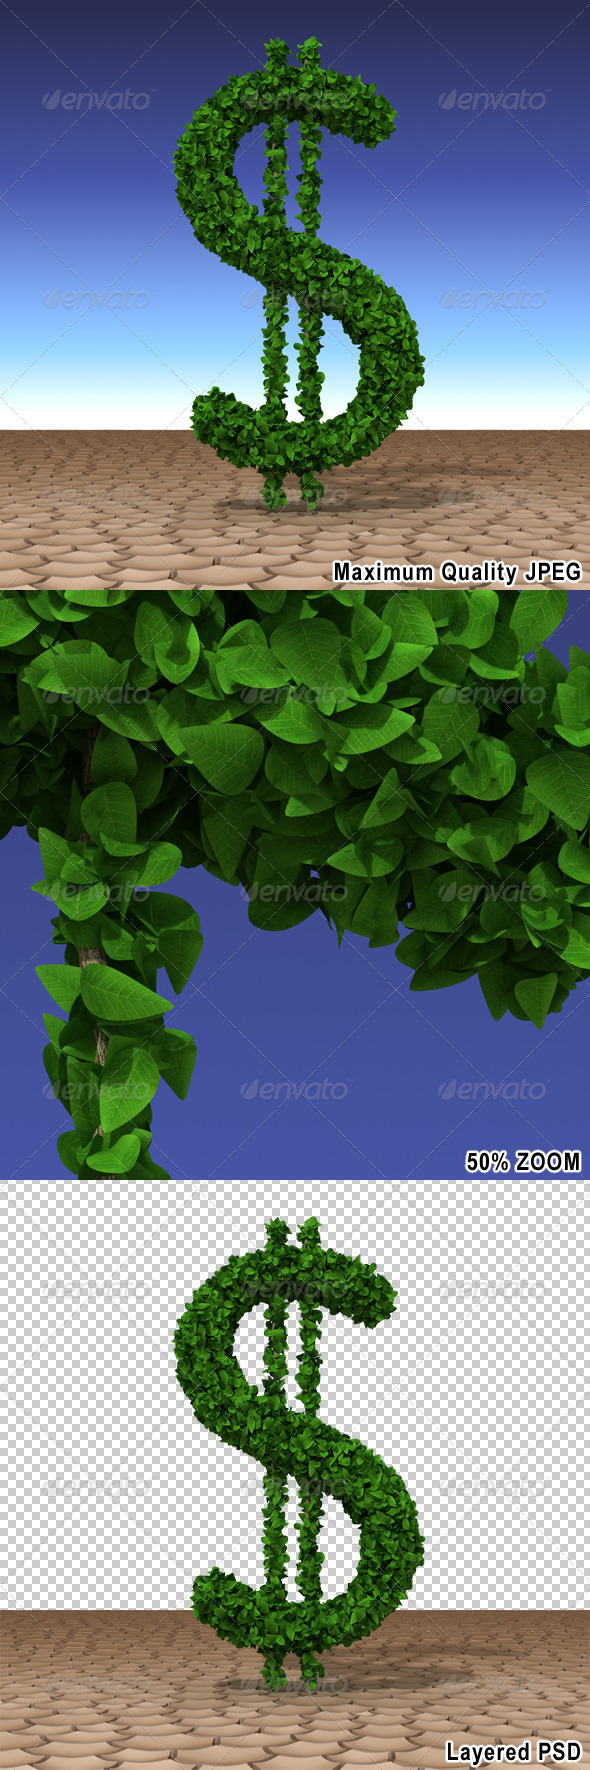 Dollar Tree Growing in the Desert - Text 3D Renders